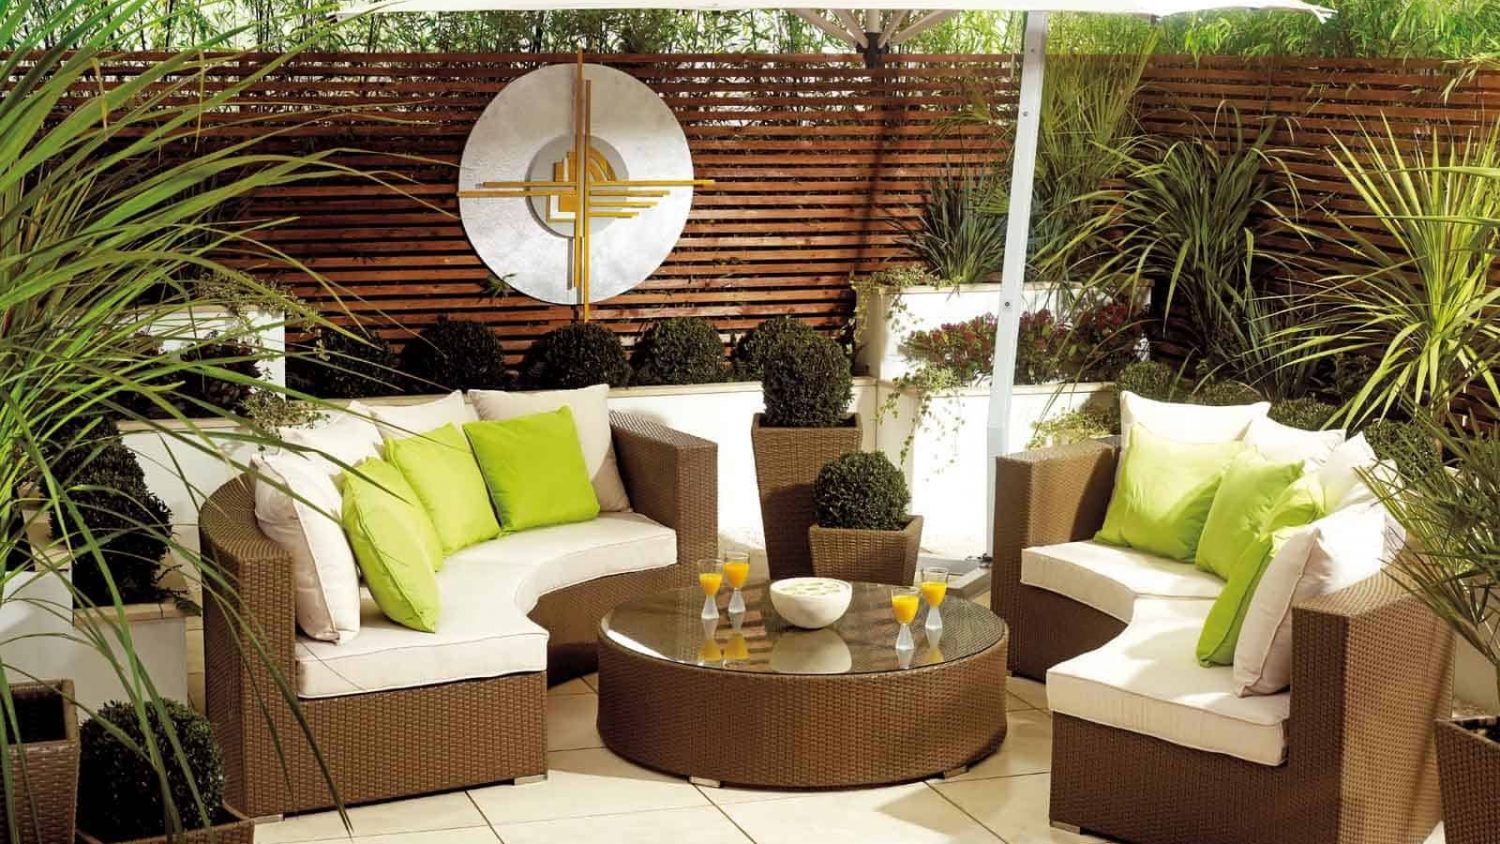 5 Best Garden Furniture Sets for Every Outdoor Space